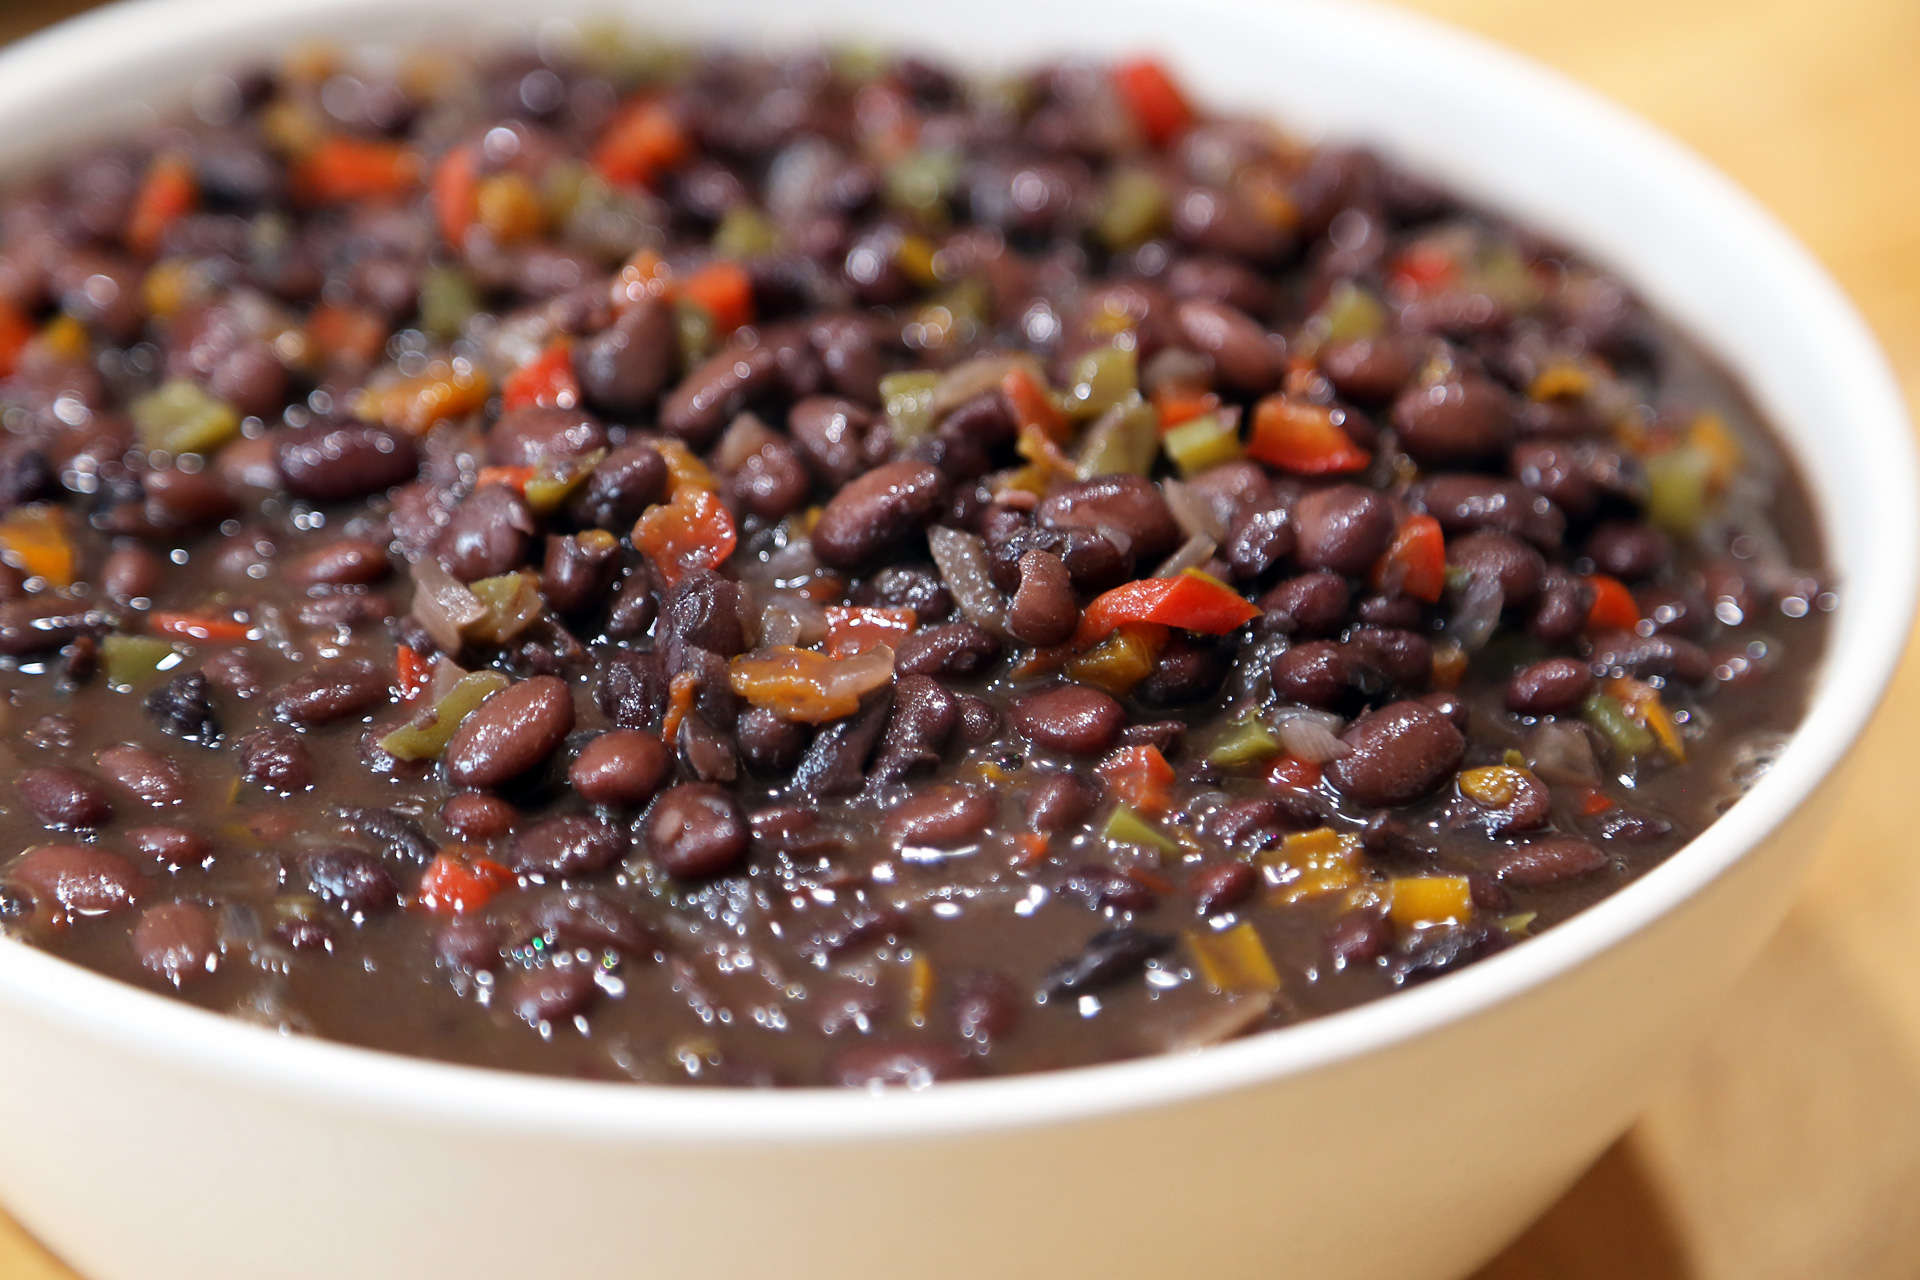 Serve the Savory Black Beans